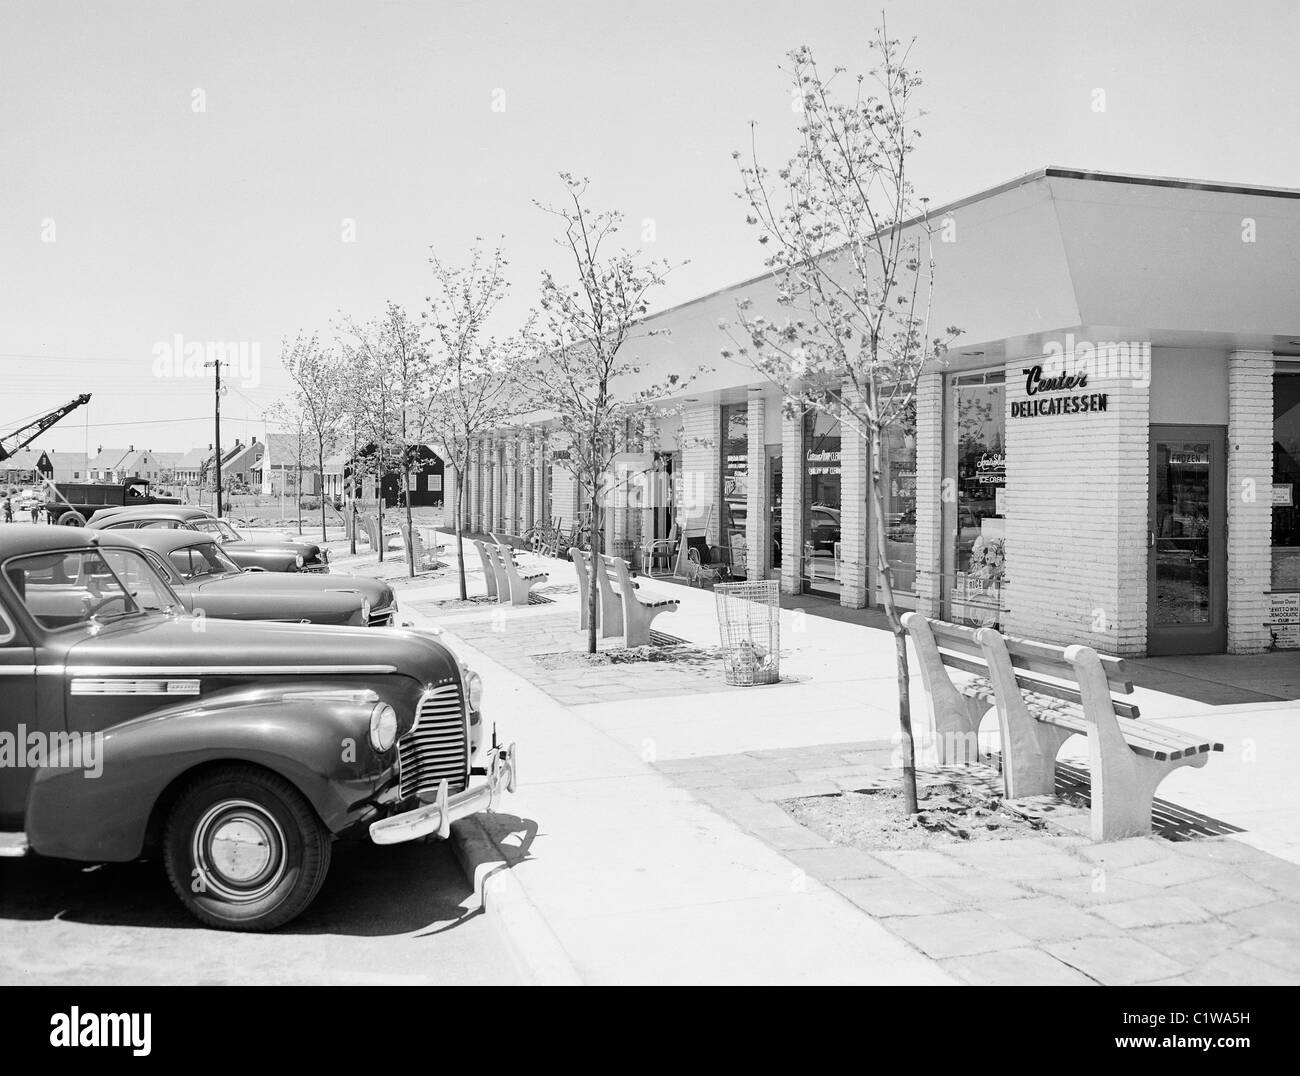 Cars parked outside shop - Stock Image